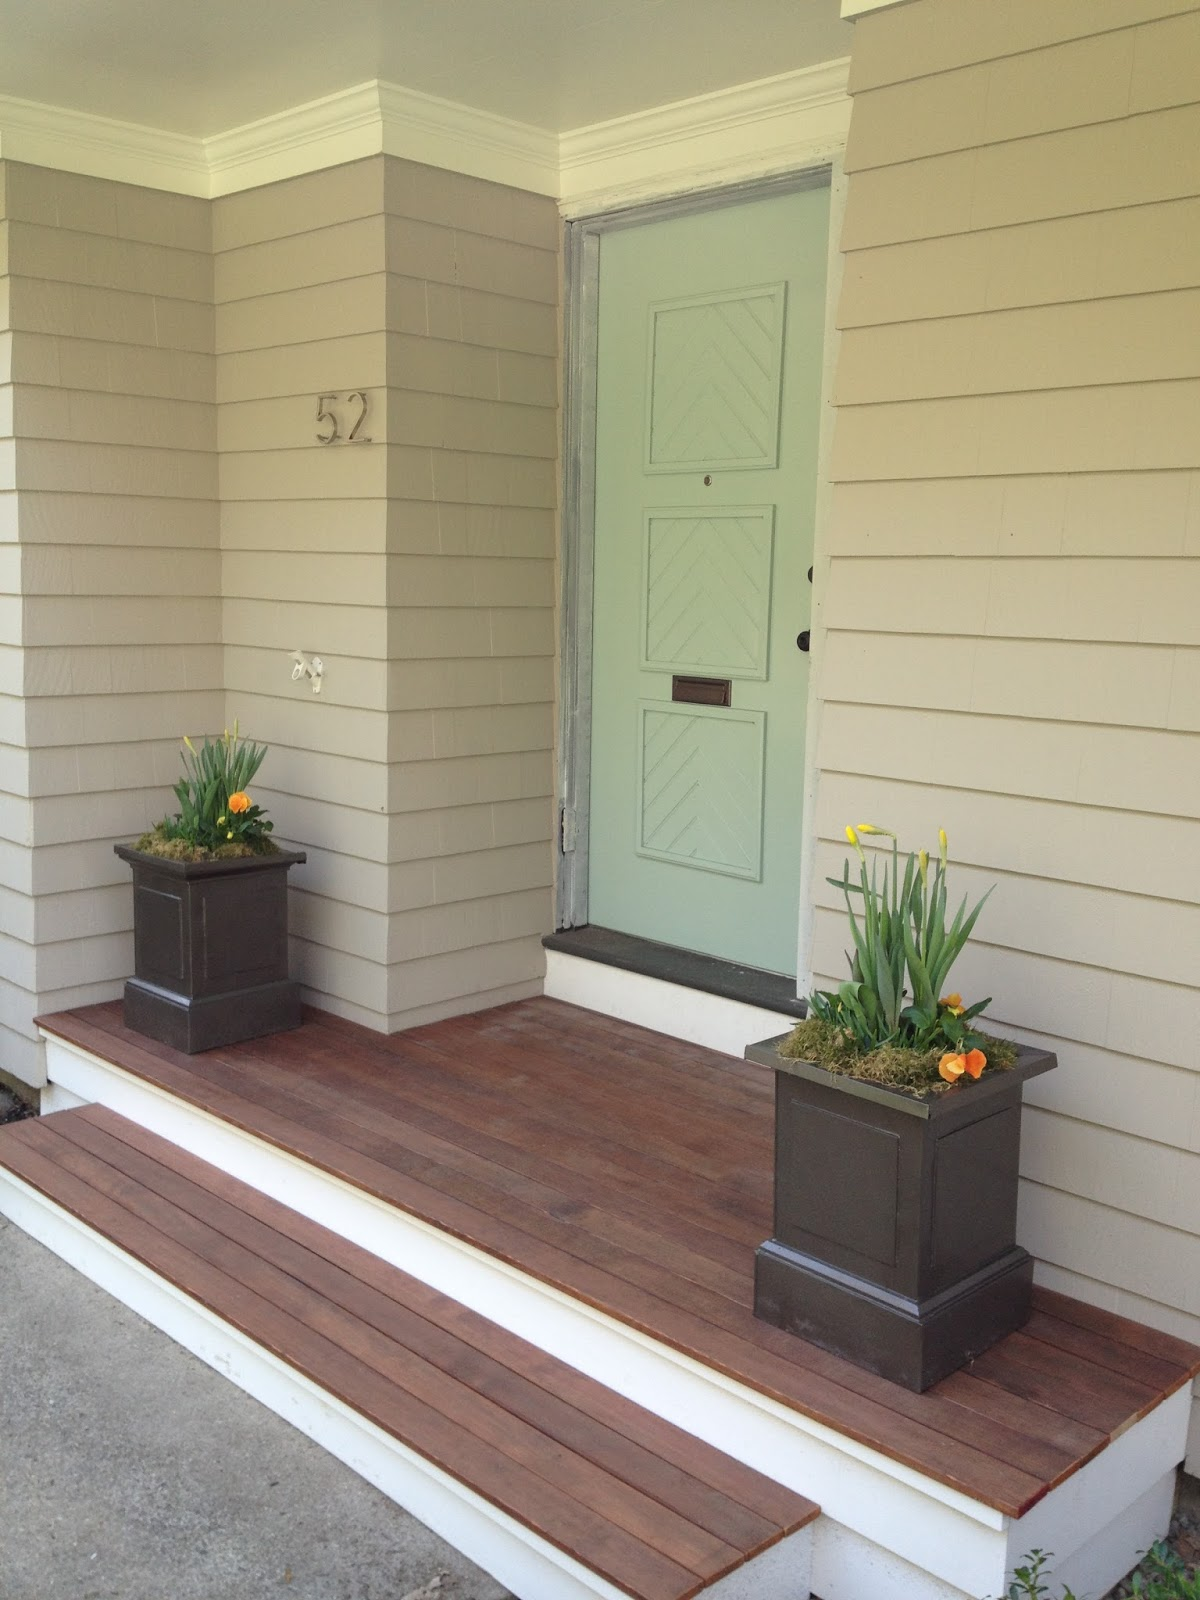 GORGEOUS SHINY THINGS: Porch Talk